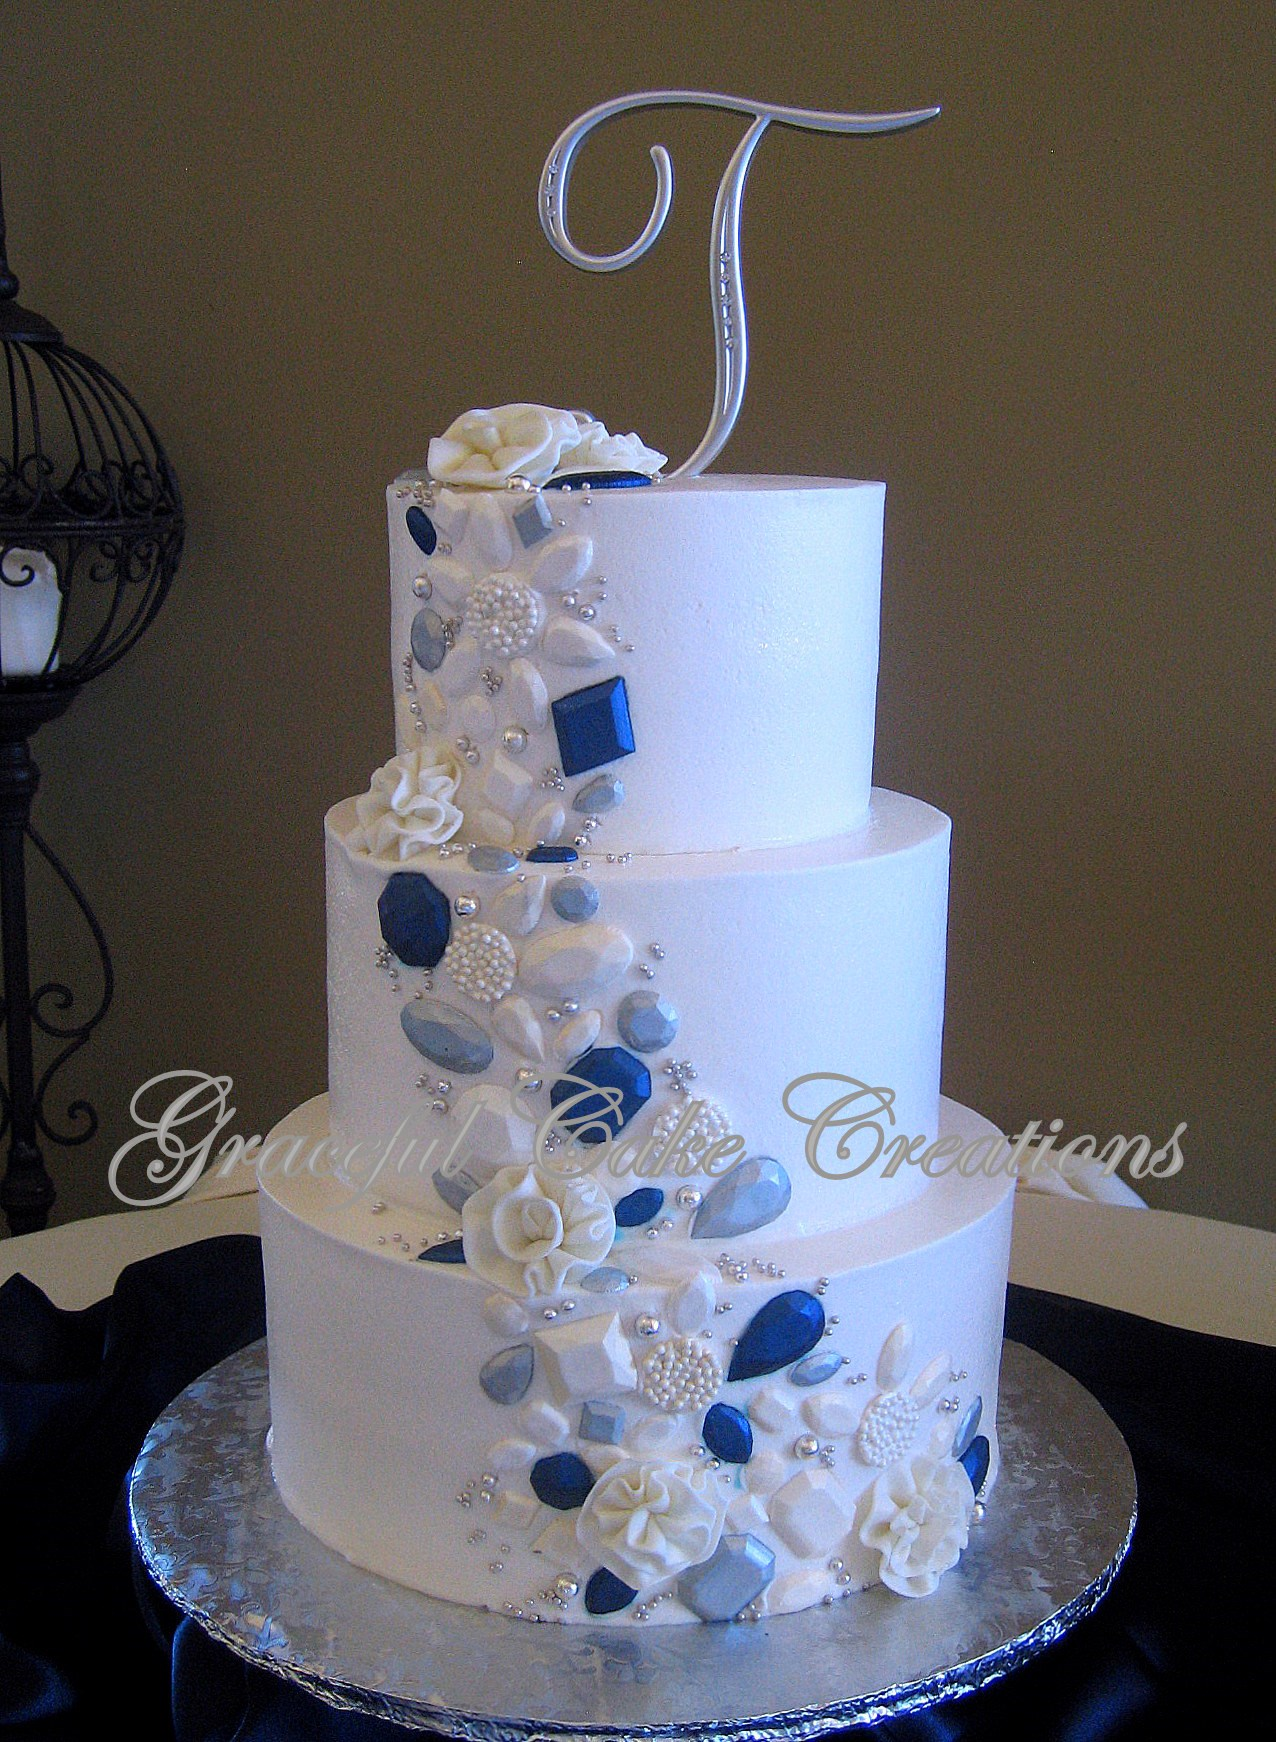 Elegant White Wedding Cake with Silver Pearl and Navy